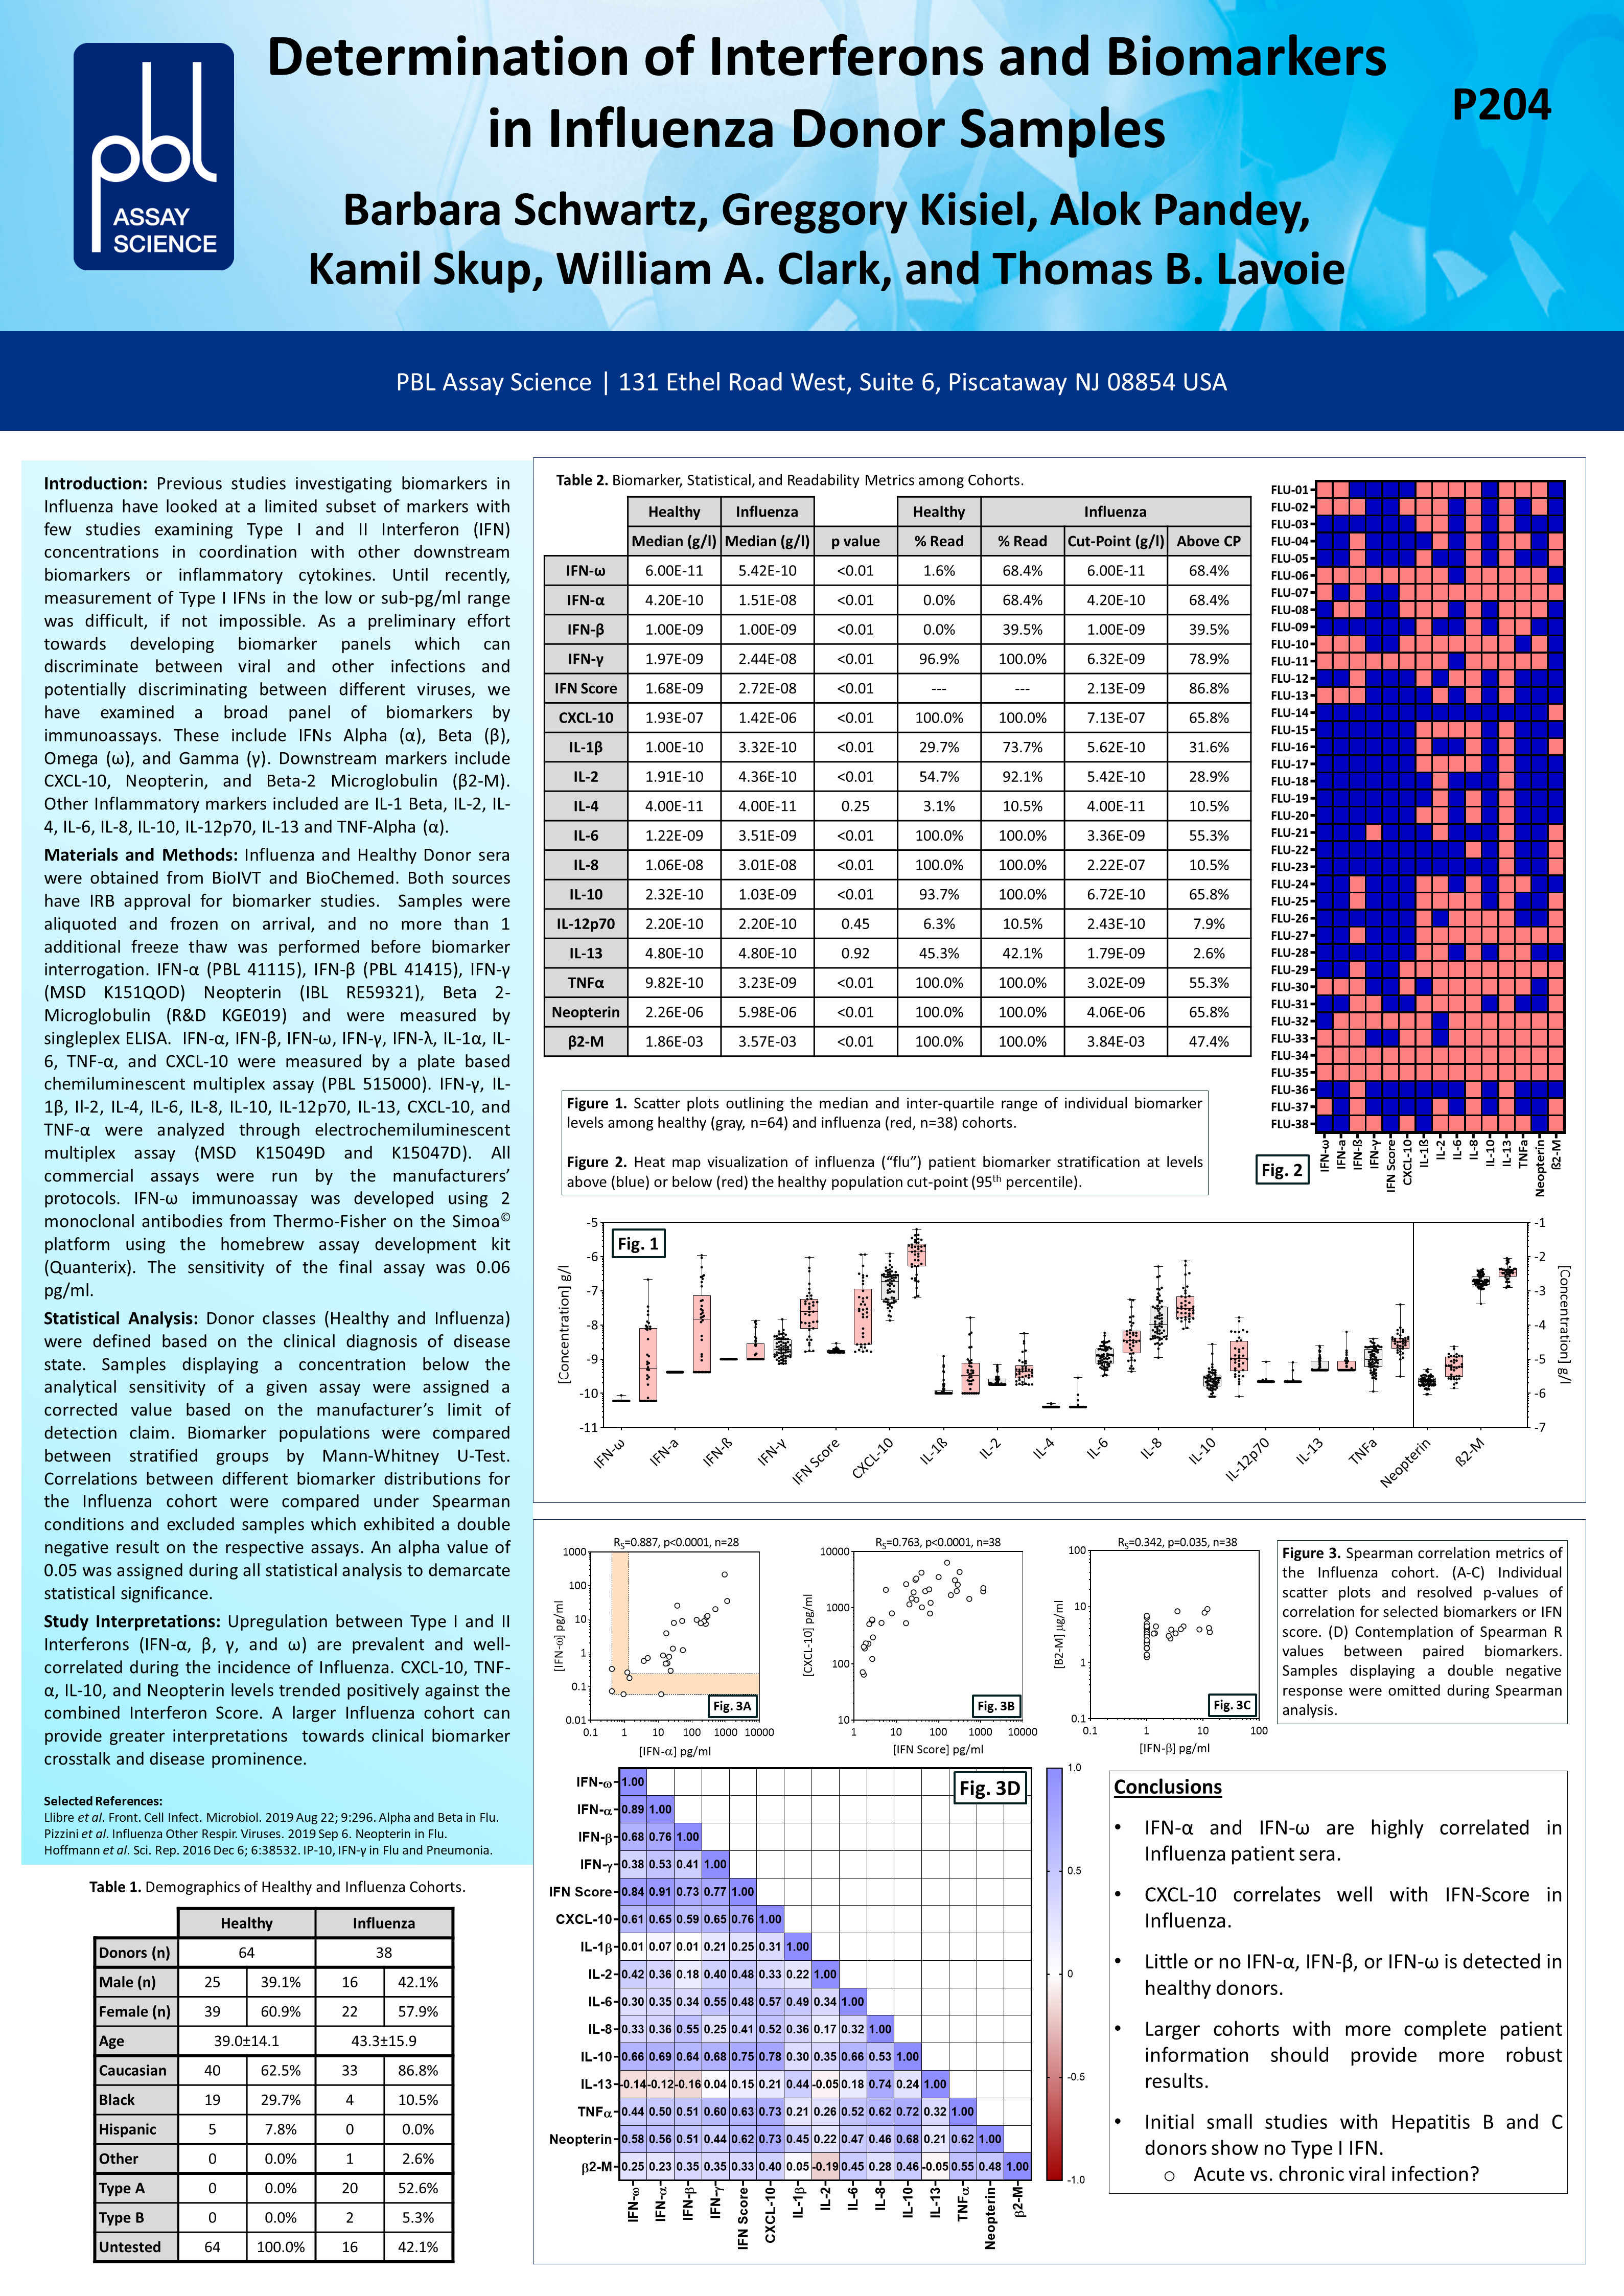 Determination of Interferons and Biomarkers in Influenza Donor Samples poster